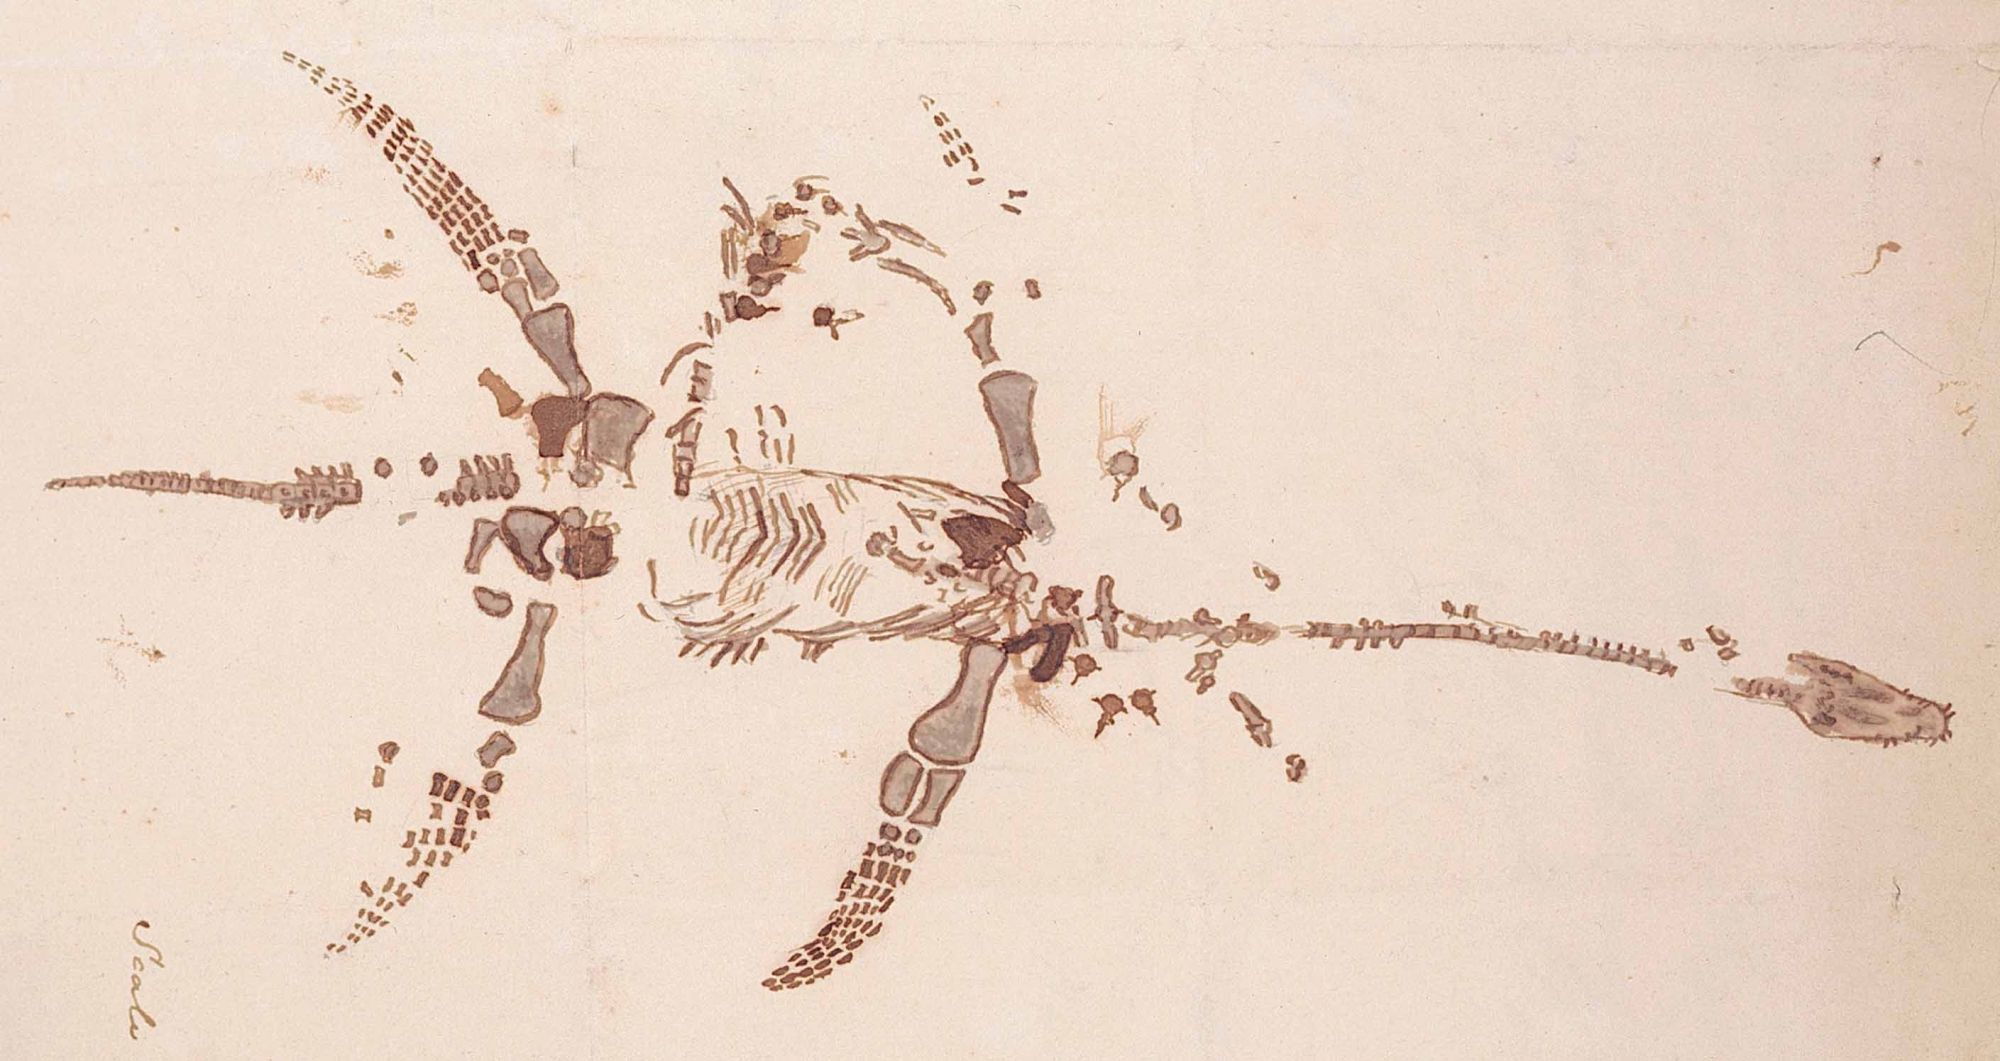 Sketch of plesiosaurus, in a letter from Mary Anning. Wellcome Collection.